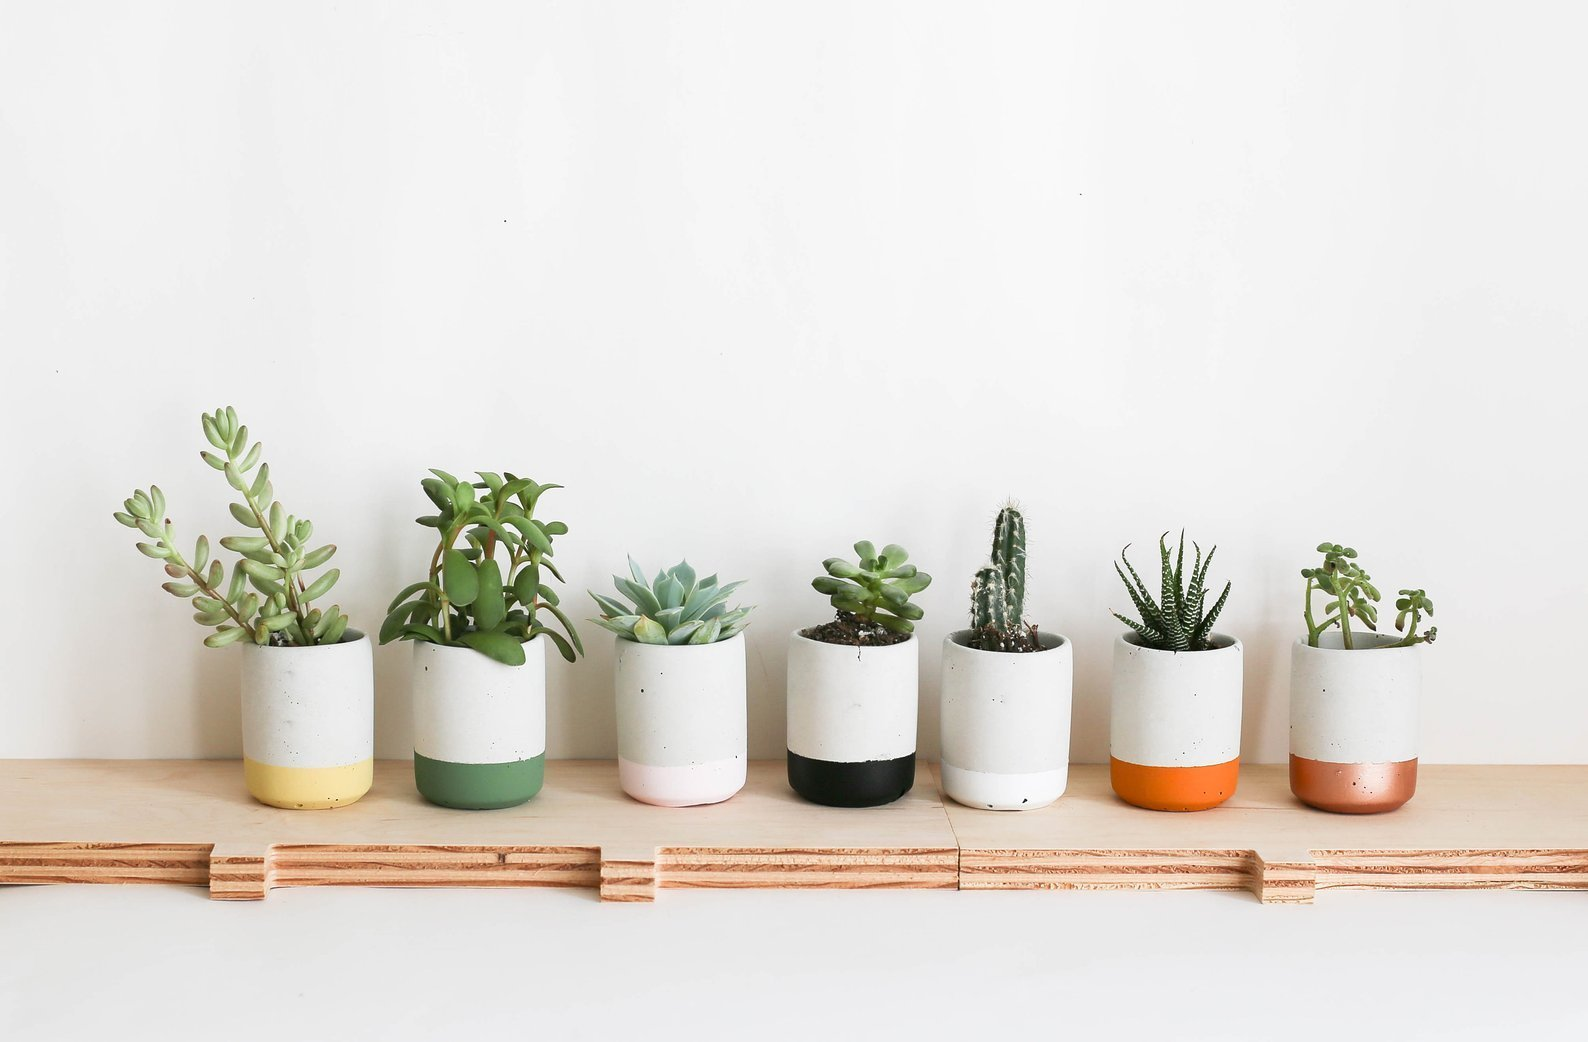 7 succulent planters lined up with succulents in them